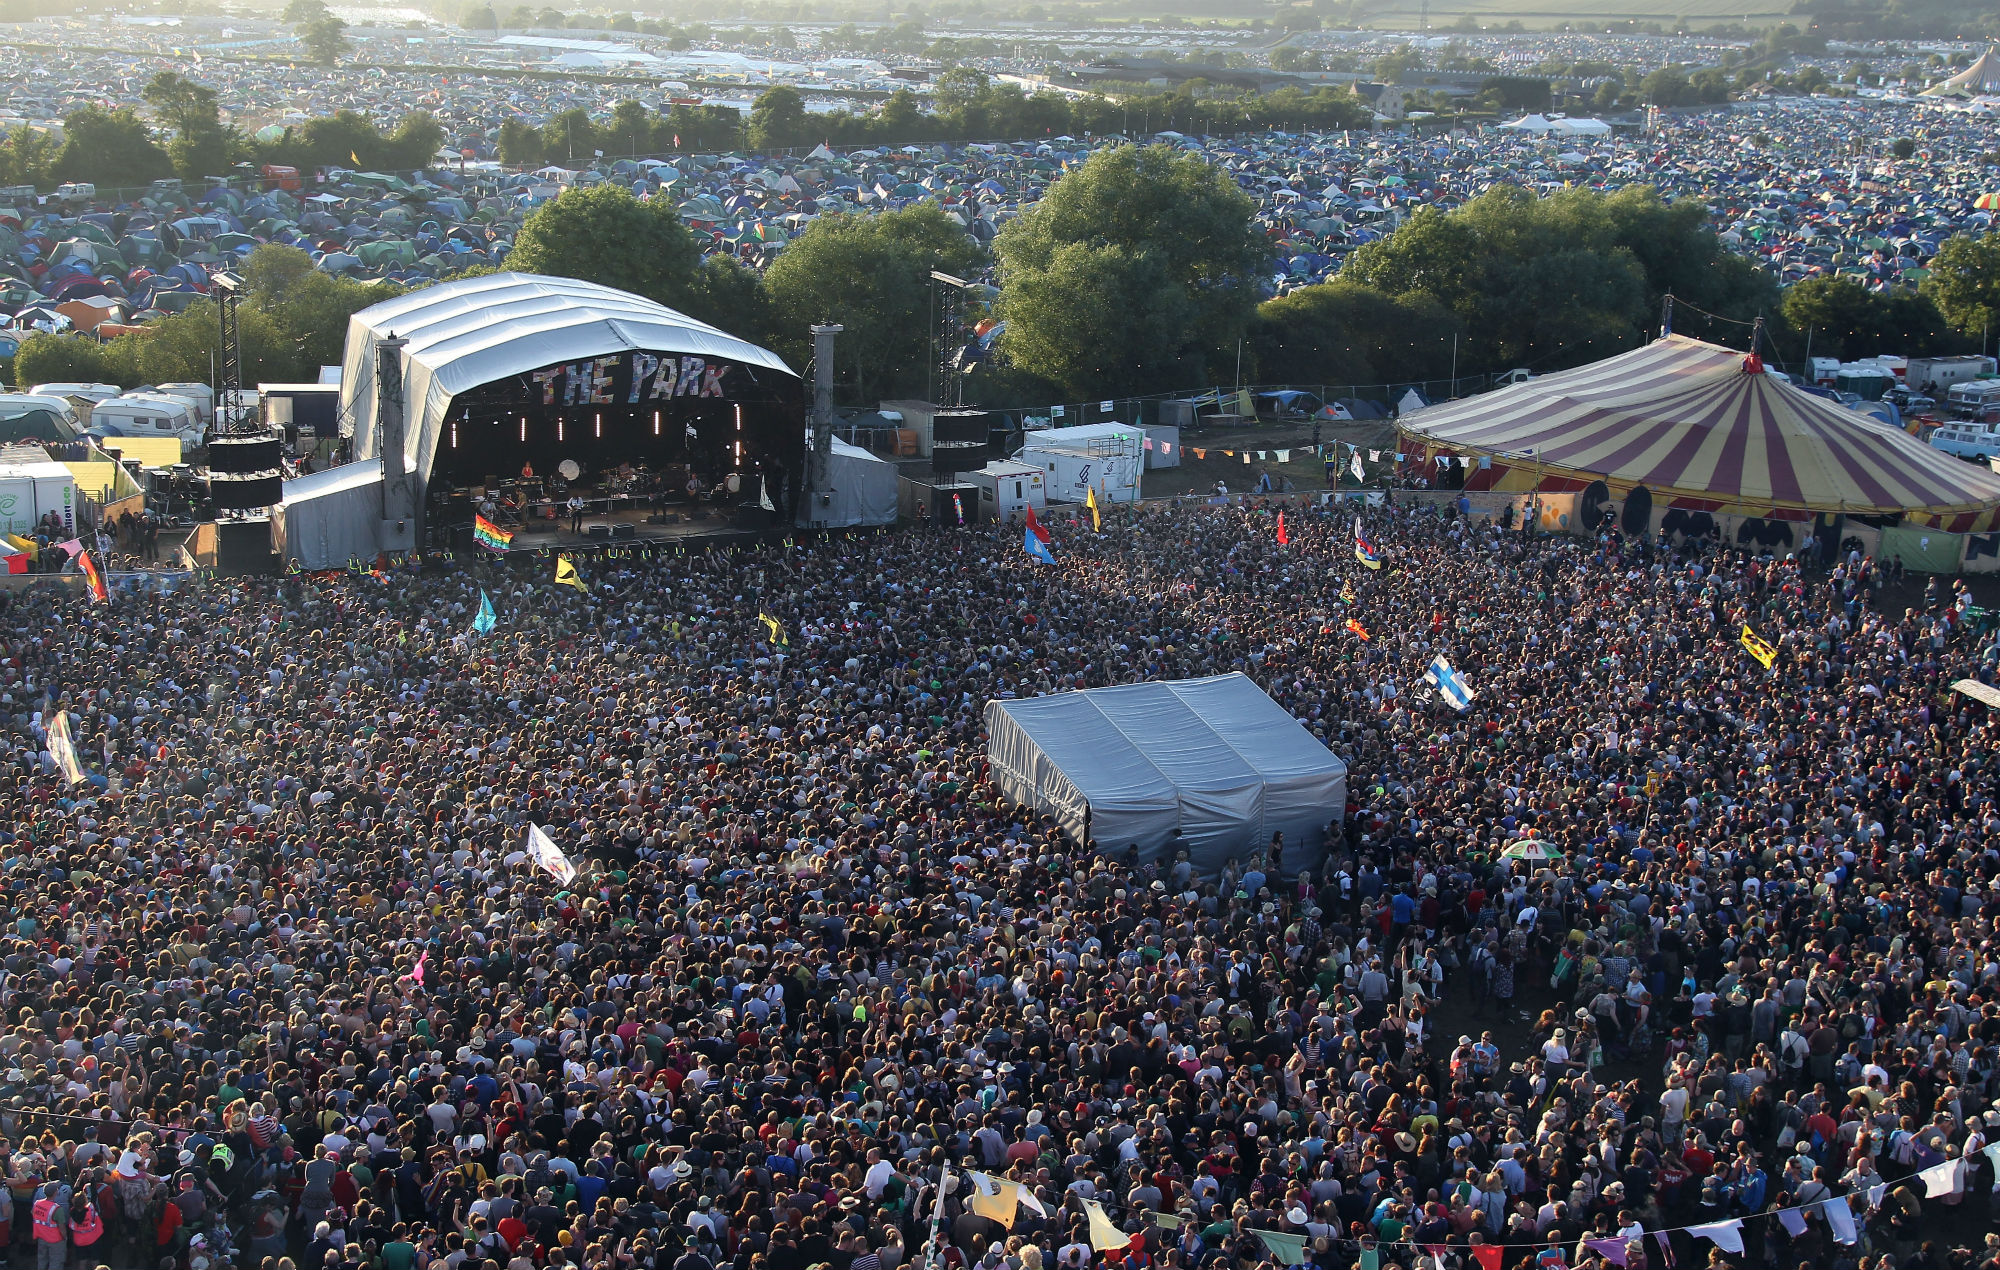 Glastonbury 2019 secret sets: All the confirmed artists and rumoured